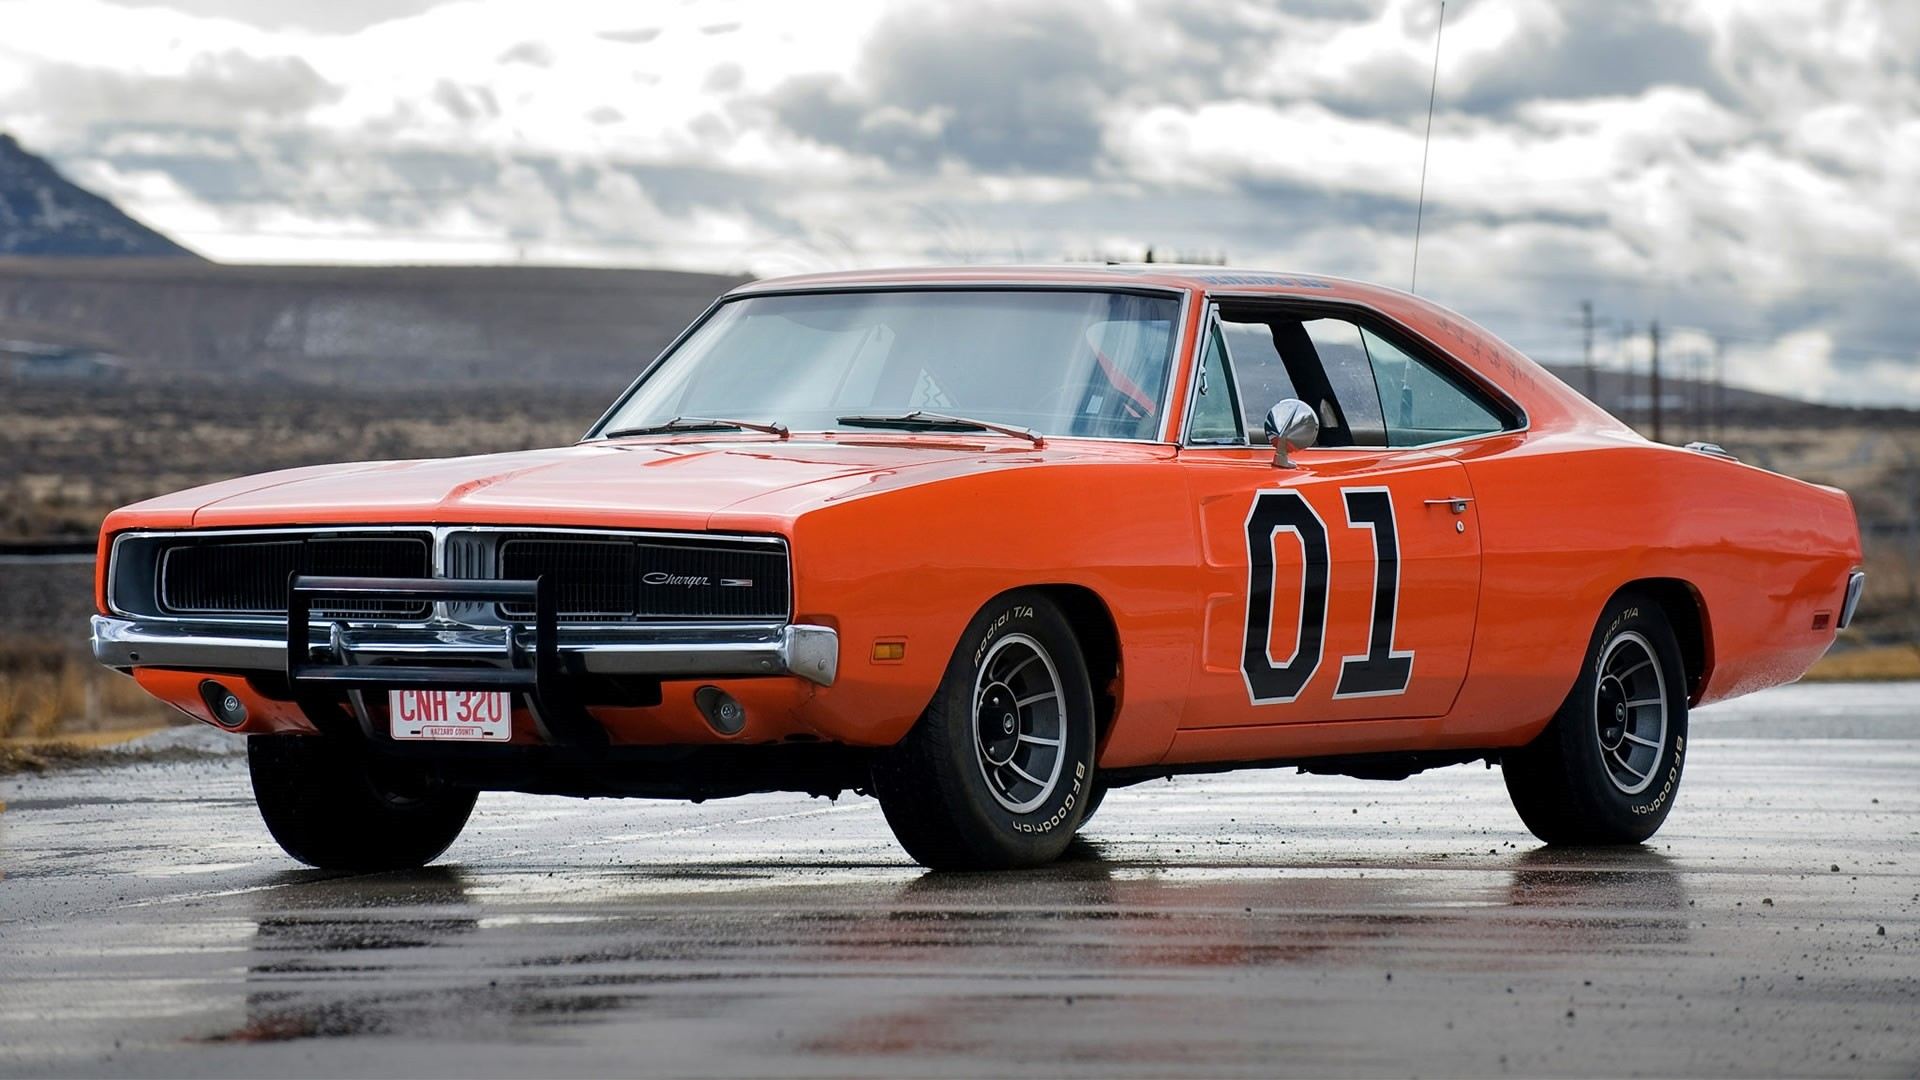 Dodge Charger Wallpaper Download